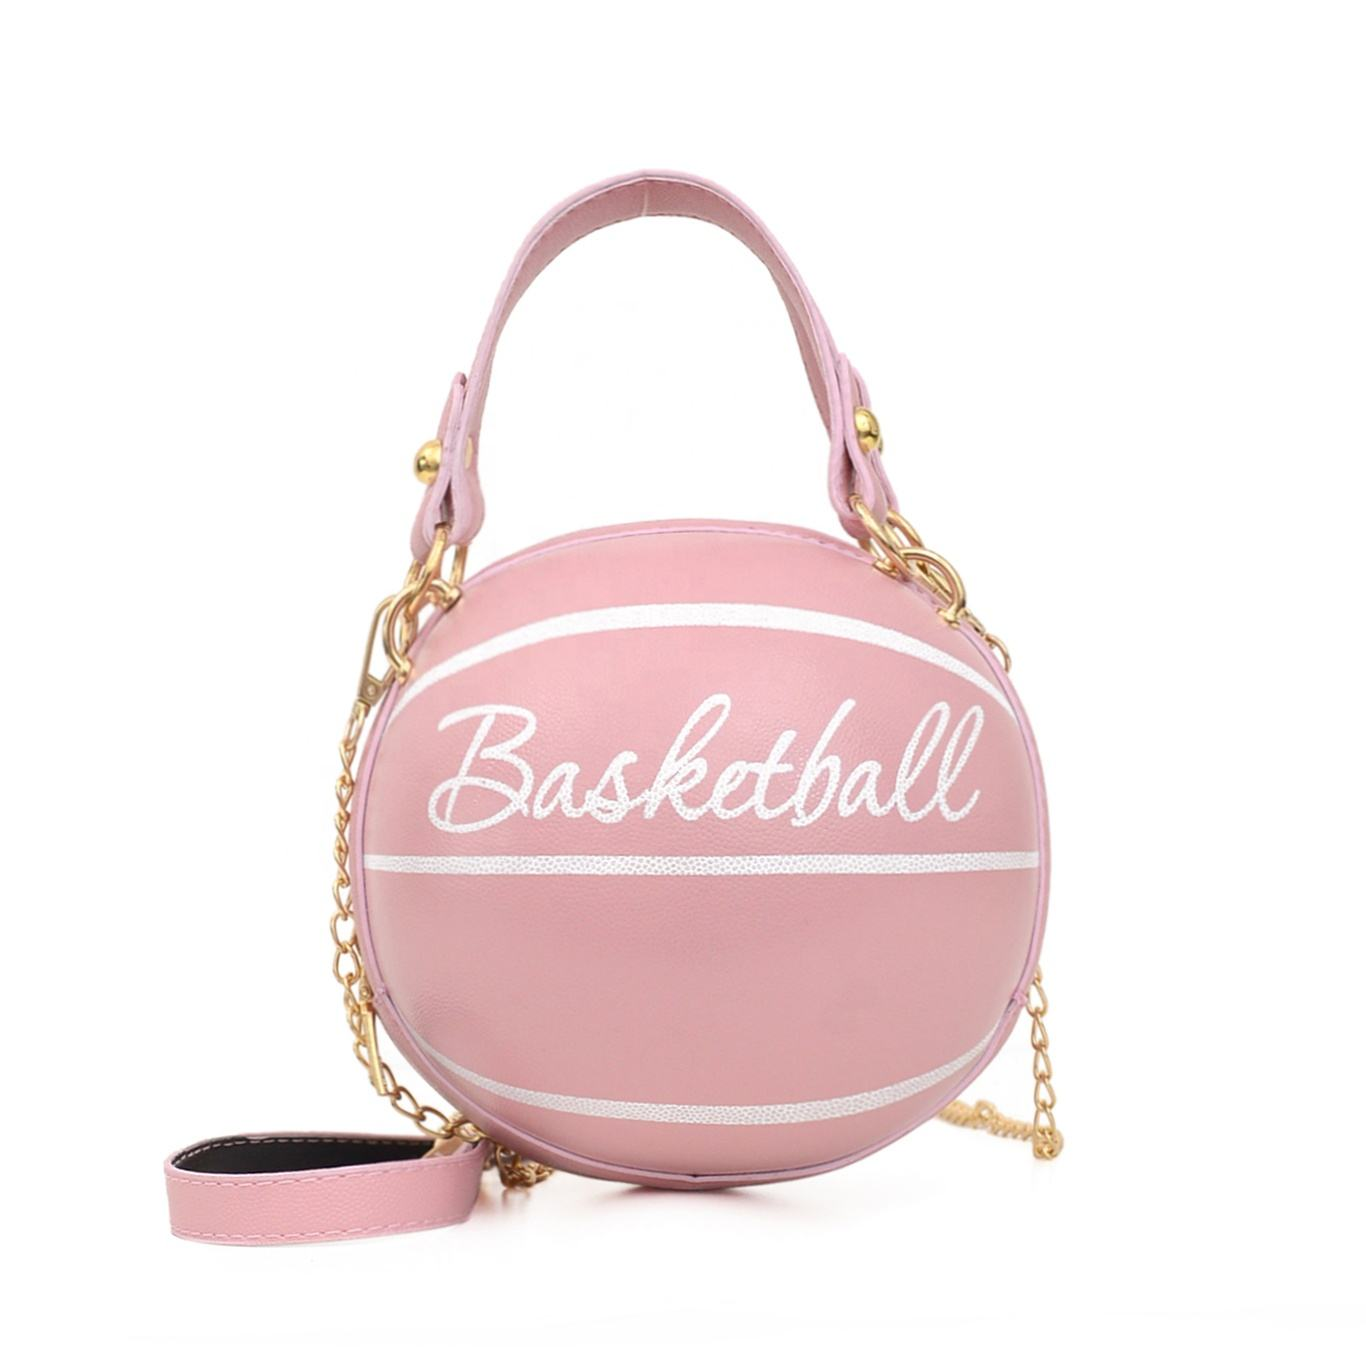 2020 high quality brand fashion basketball purses pink basketball handbag round basketball purse mini purses